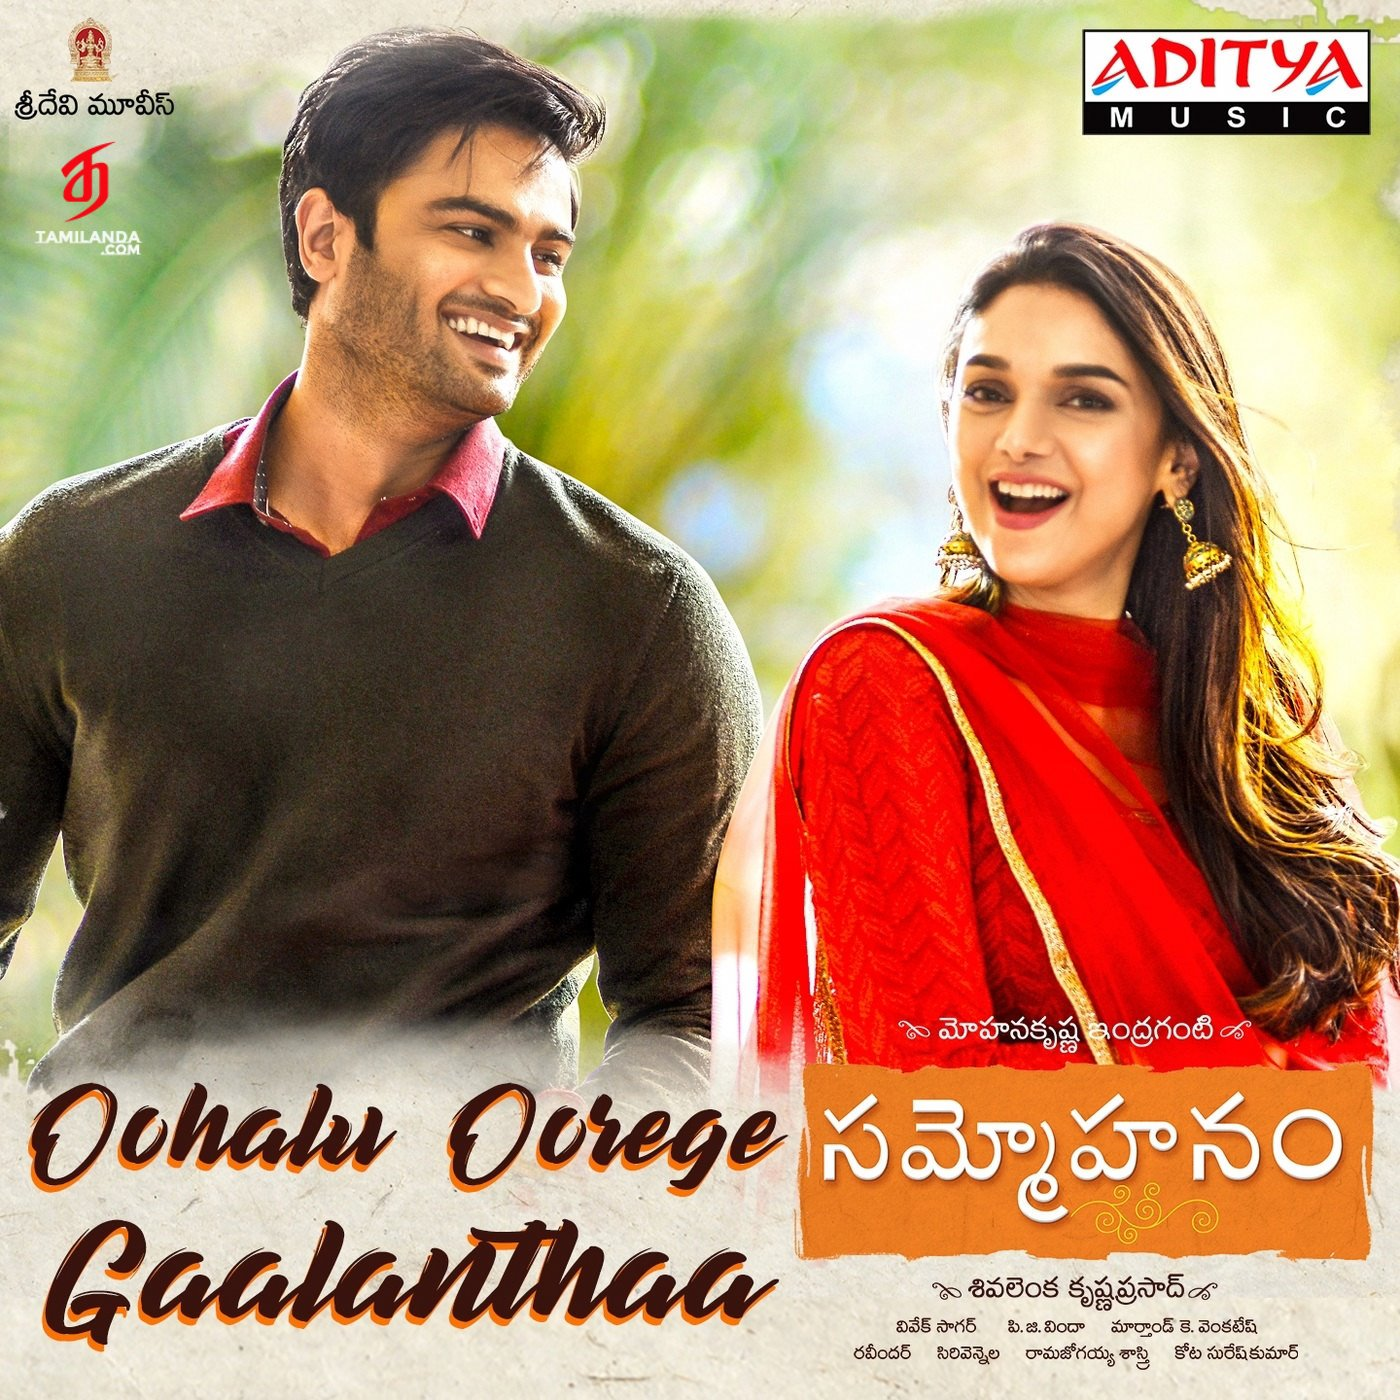 Oohalu Oorege Gaalanthaa (From Sammohanam) (Single) 16 BIT FLAC Song